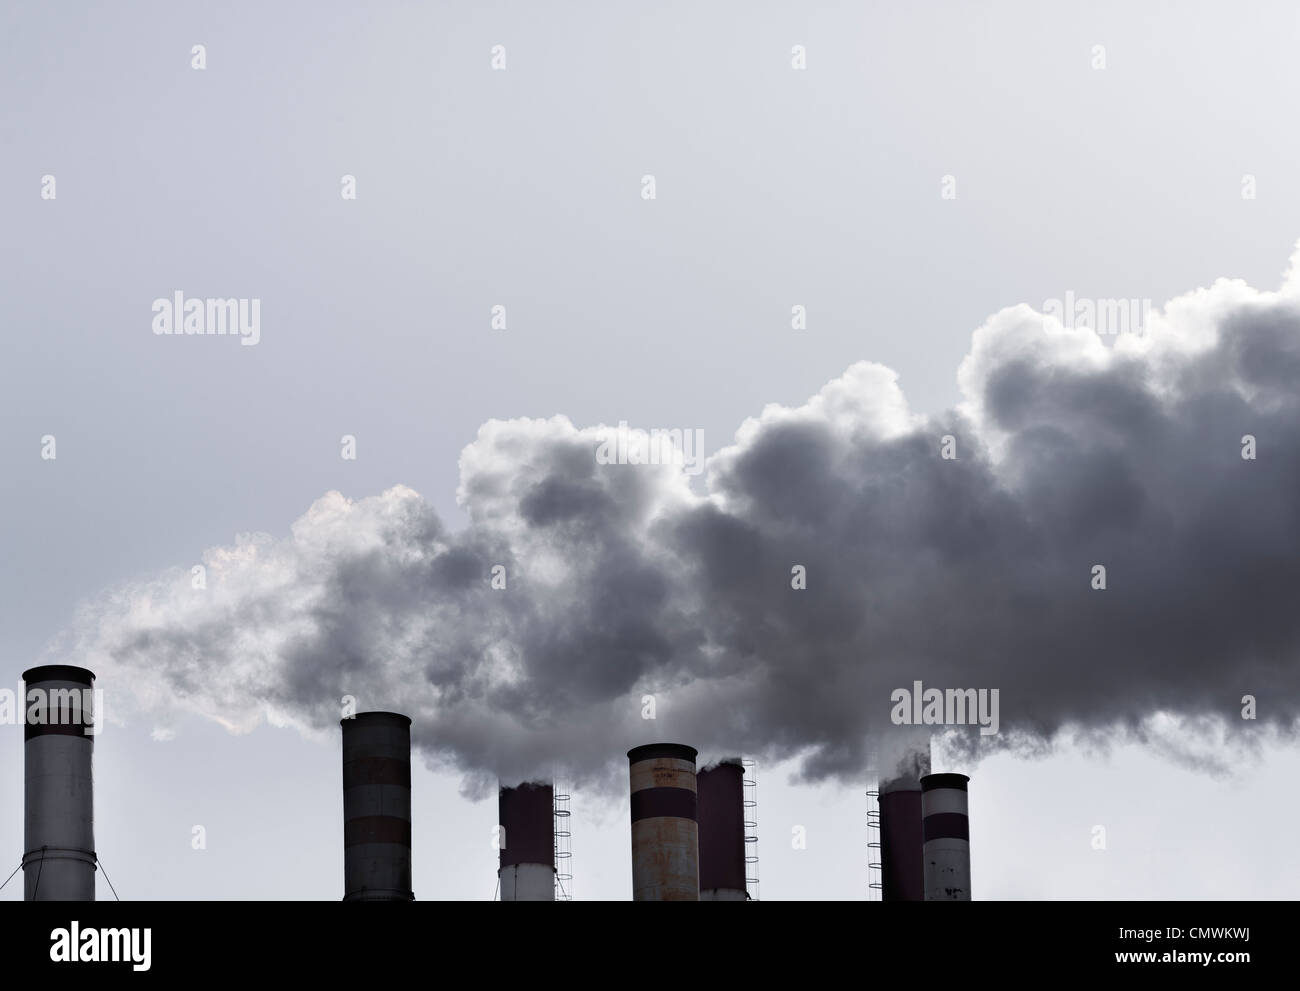 industrial tubes pollute the environment , ecology concept - Stock Image